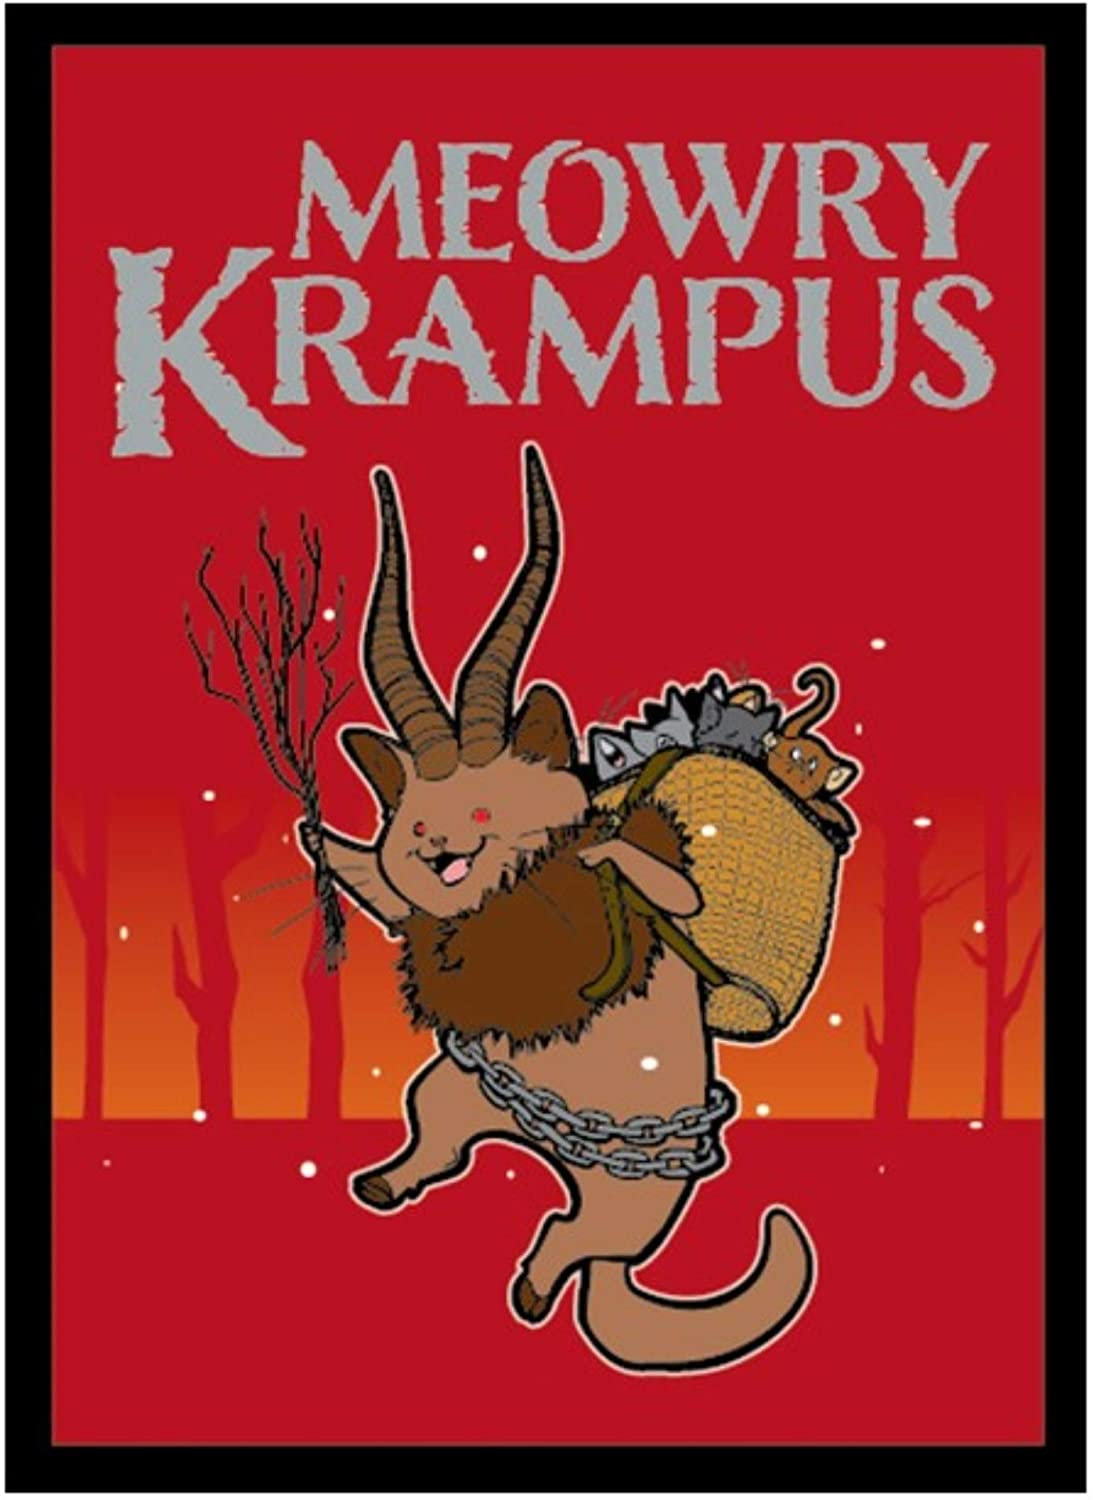 DP: Krampus (50)